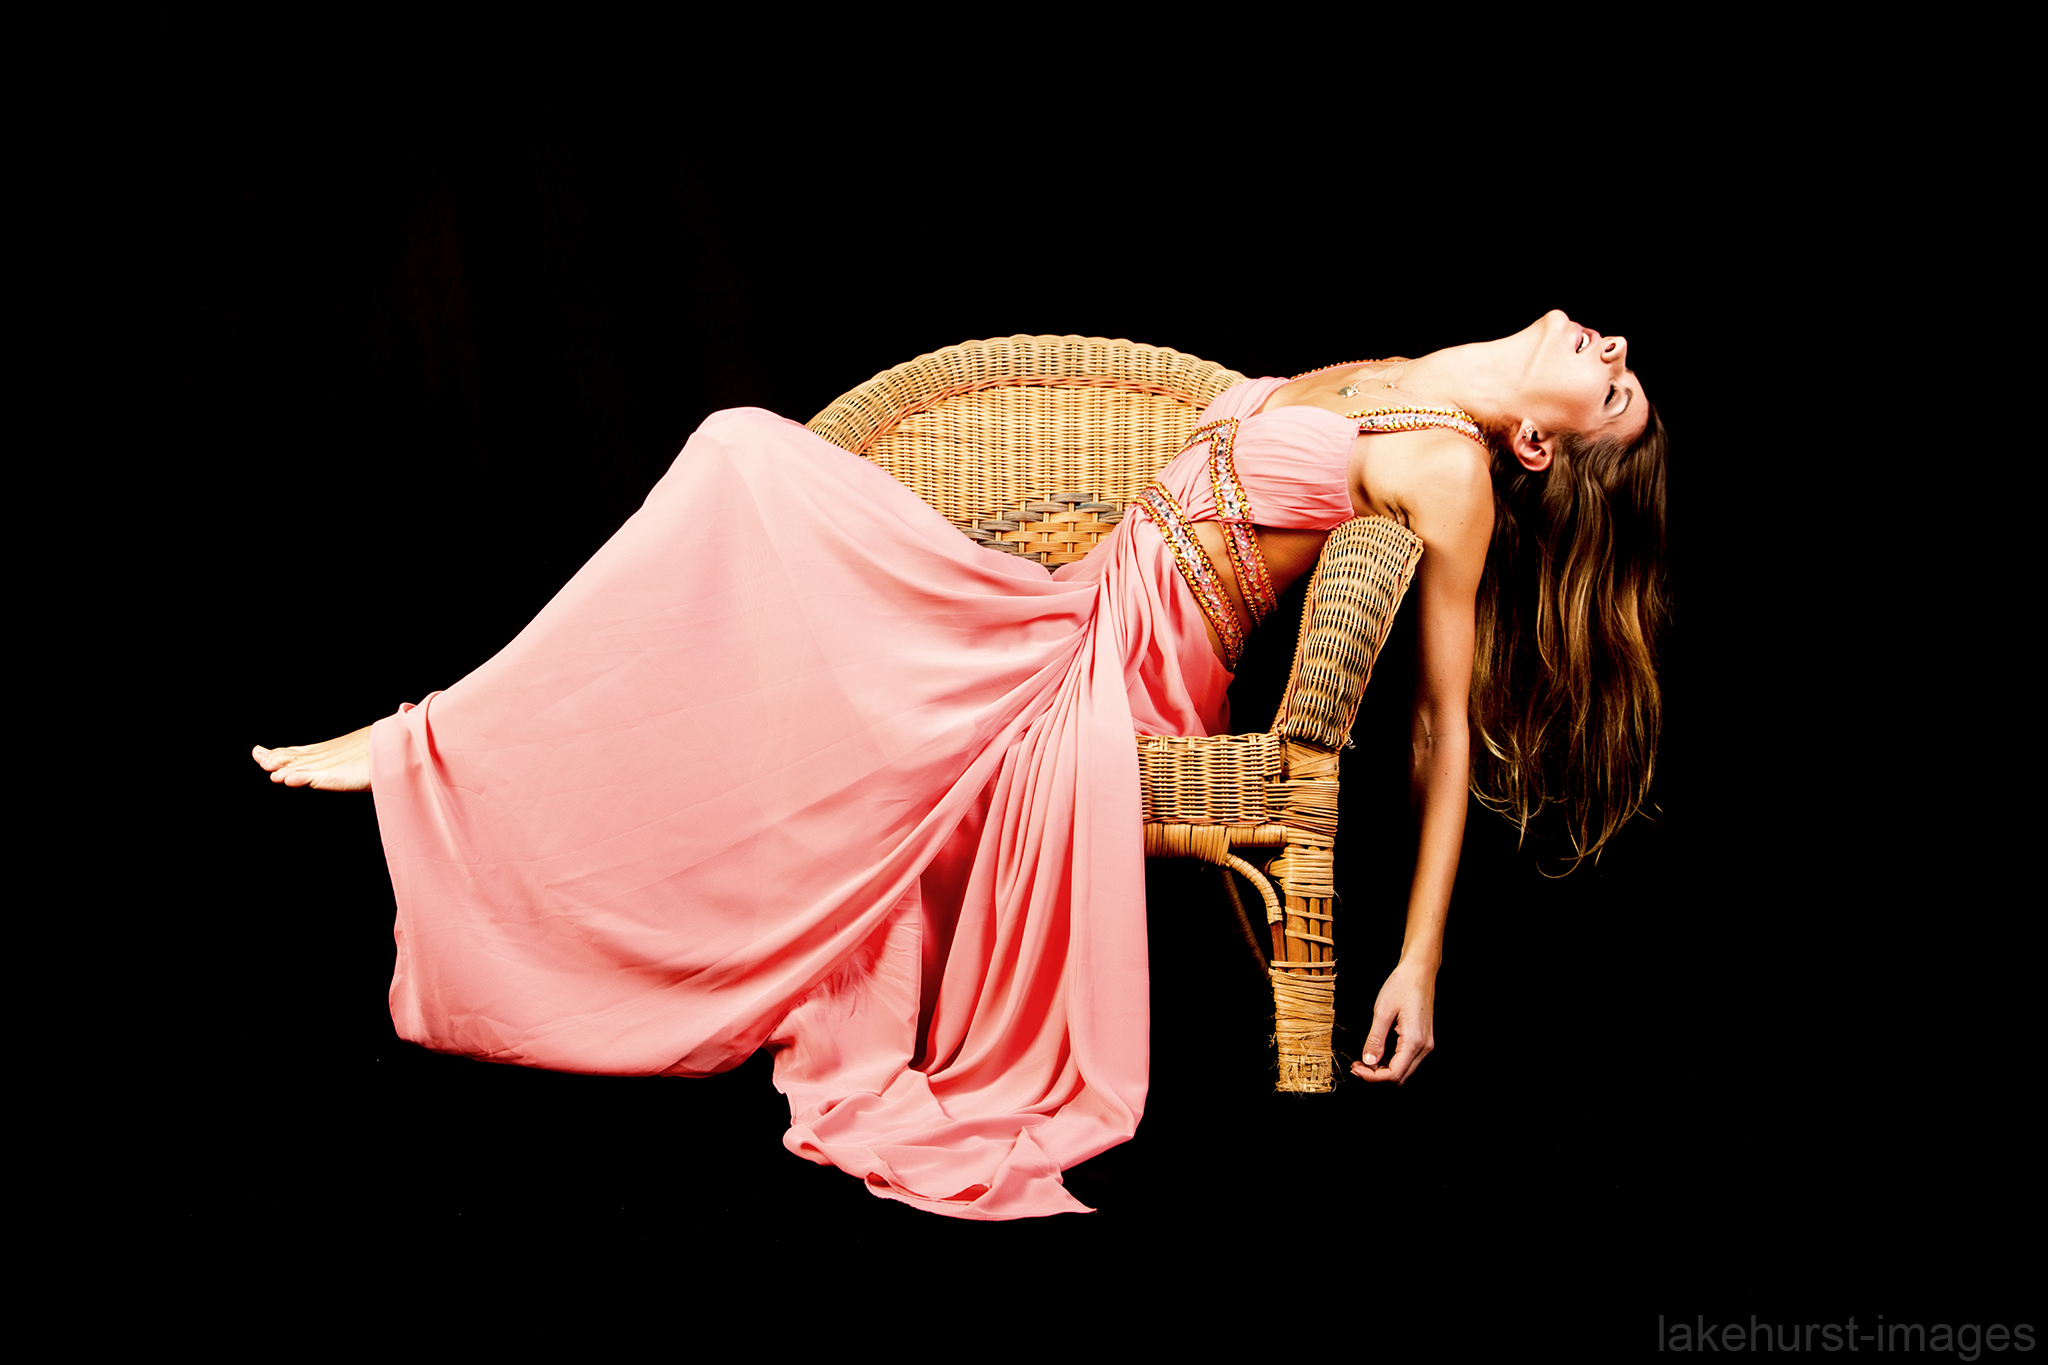 ... Lady Fainted In The Chair By Lakehurst Images